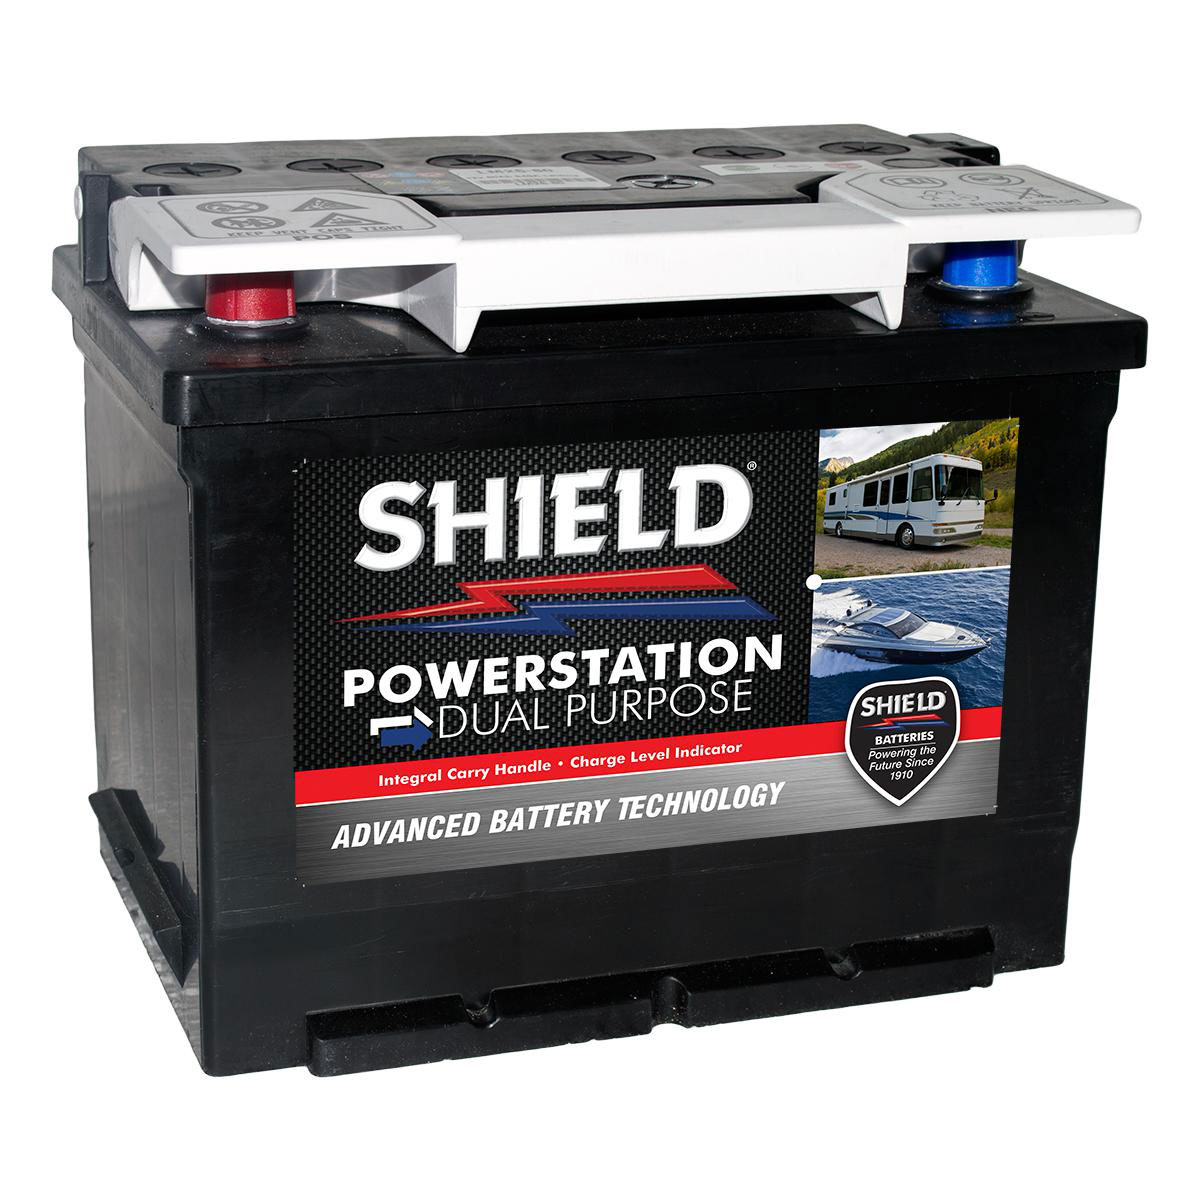 Shield-LM26-80-Battery.jpg